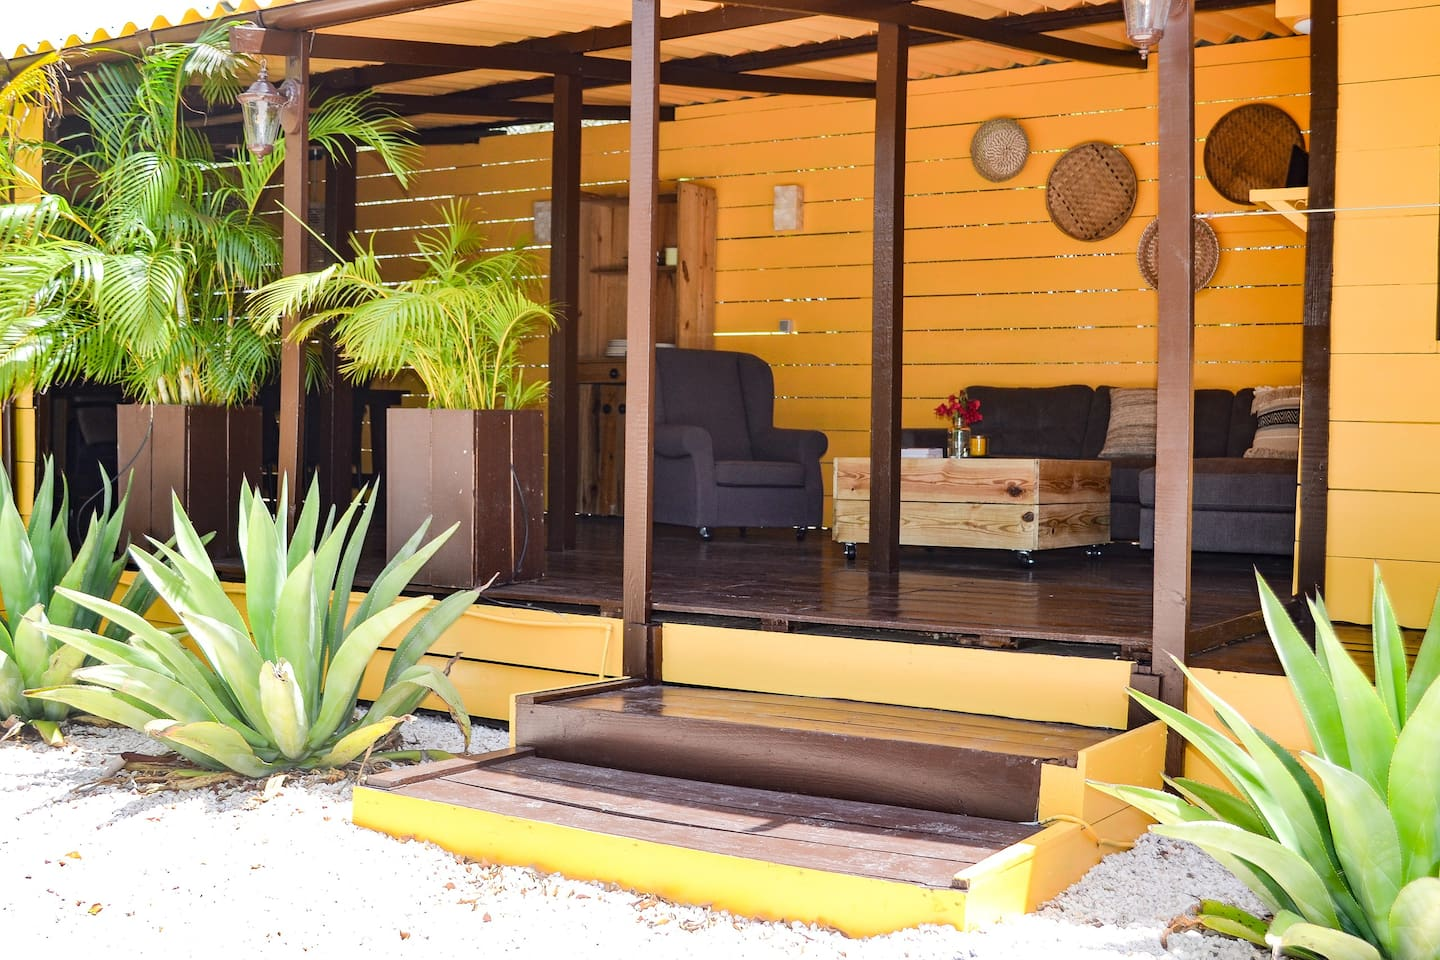 Large veranda full of shade with lounge sofa and lounge chairs. Also a large wooden diner table.